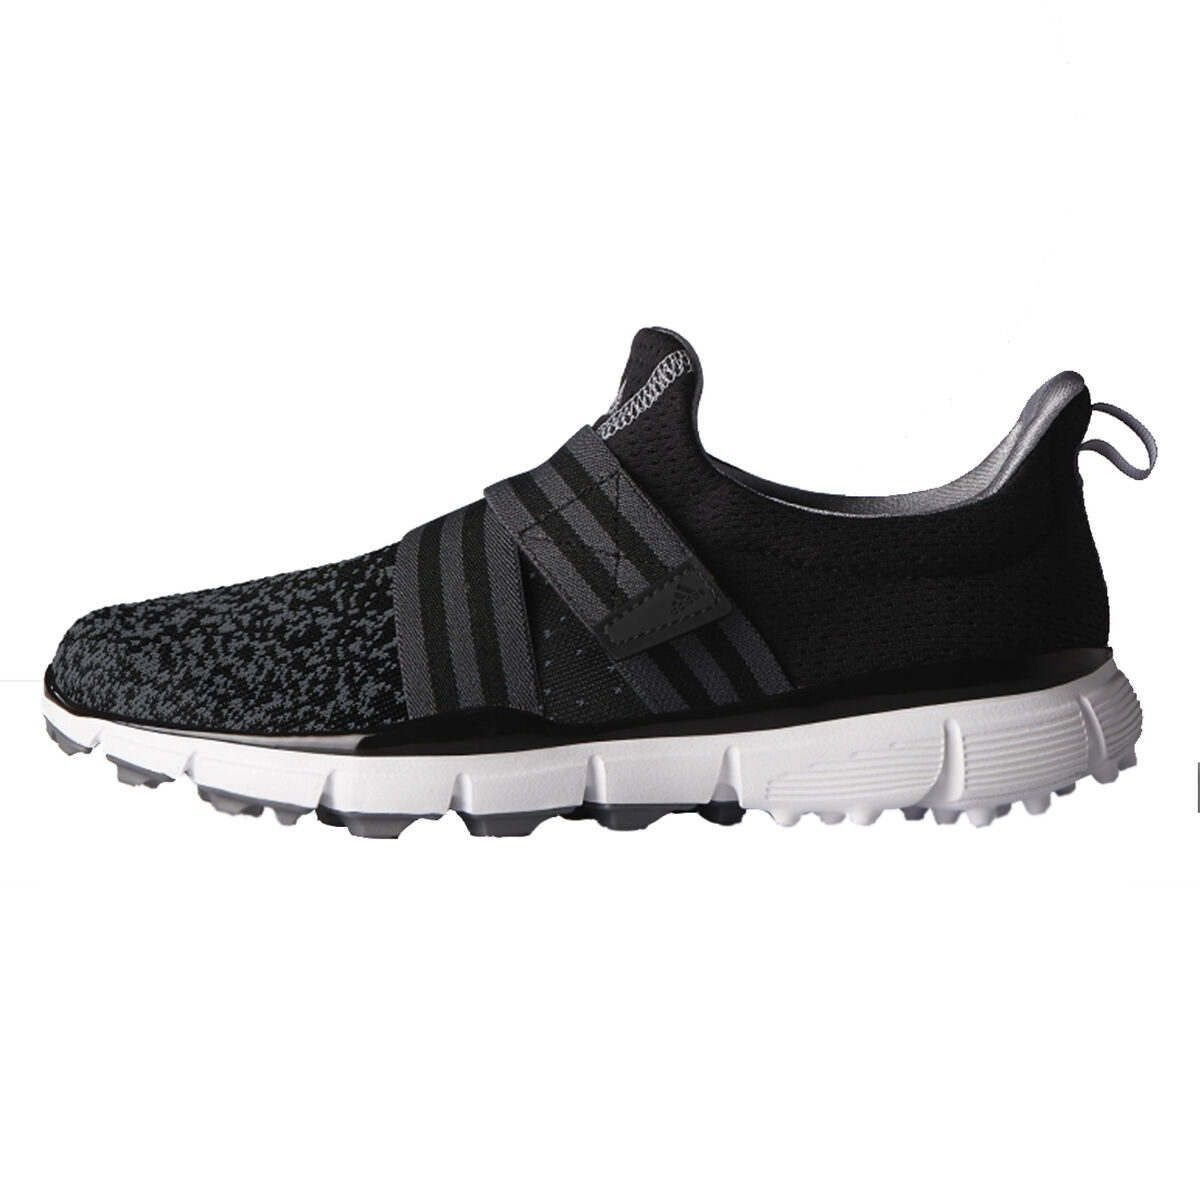 cheaper d6d9a ae644 Images. adidas climacool Knit ...